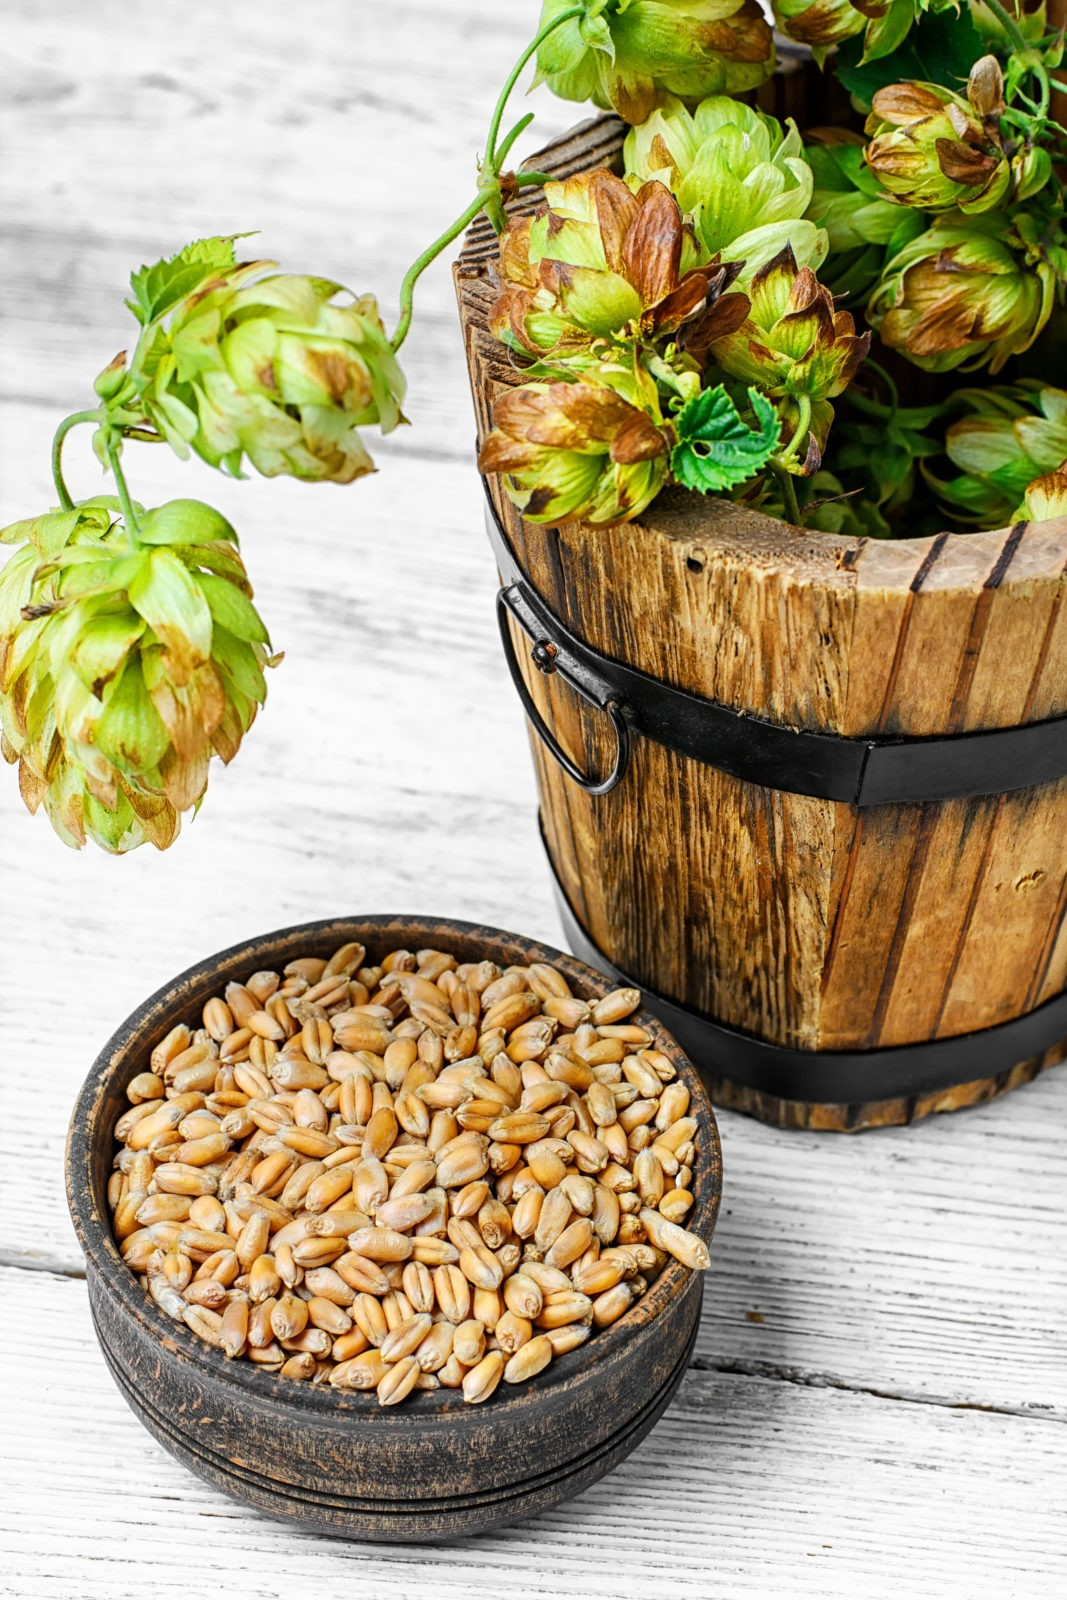 Twig beer hops and seed in the wooden tub